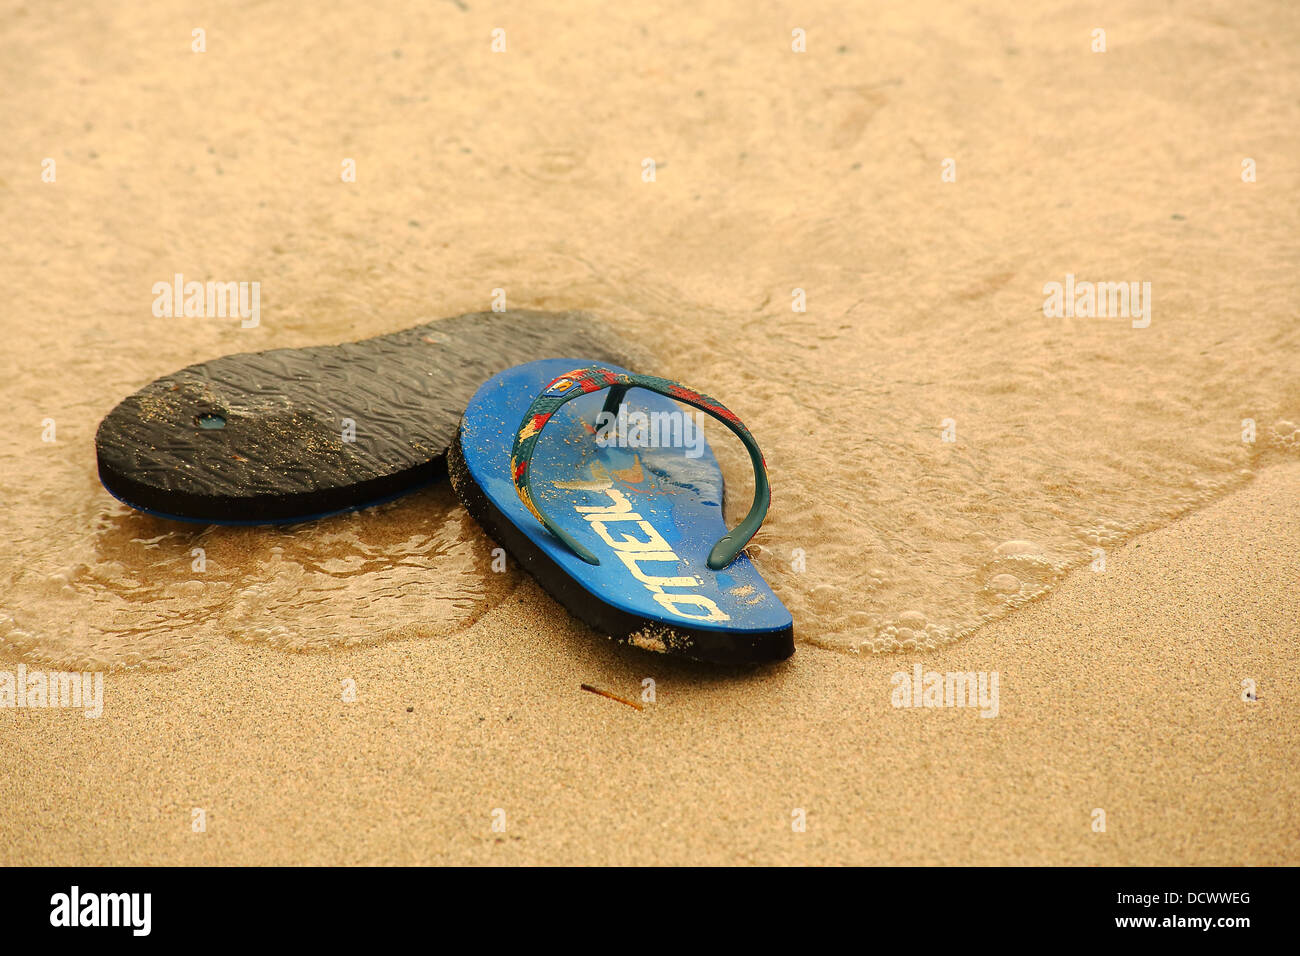 A pair of beach shoes laying discarded on a sandy beach - Stock Image